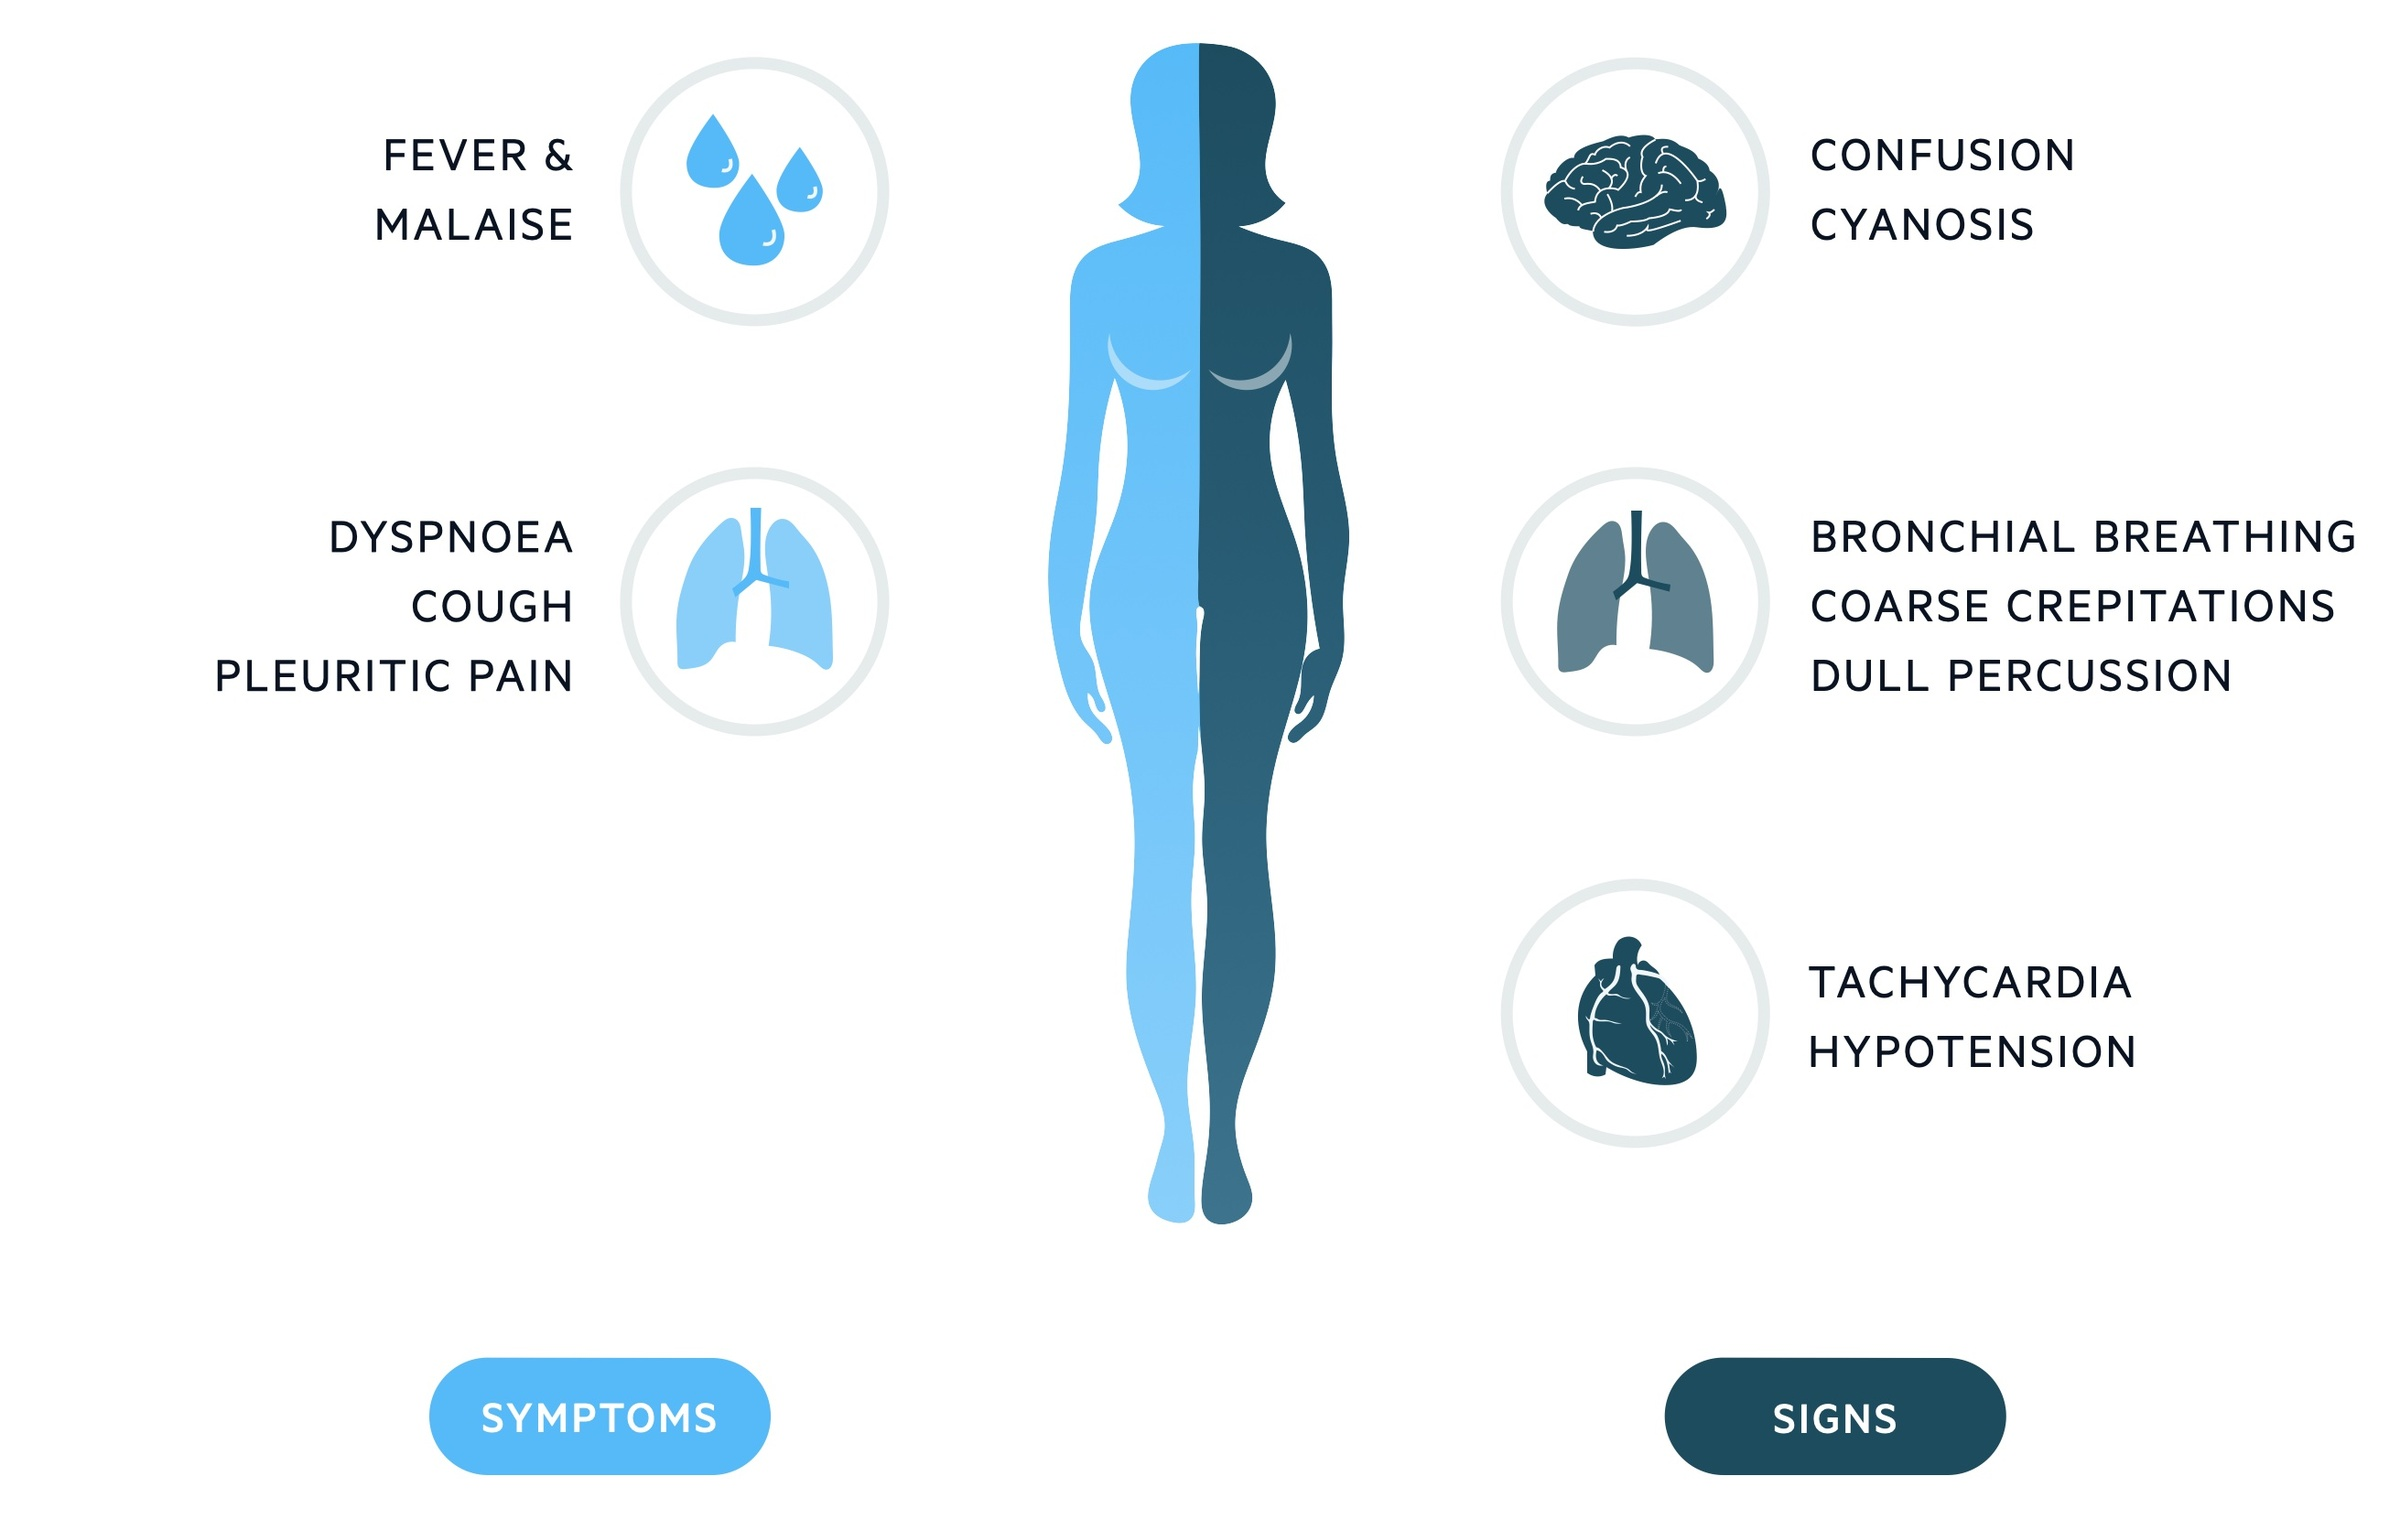 Clinical features of pneumonia